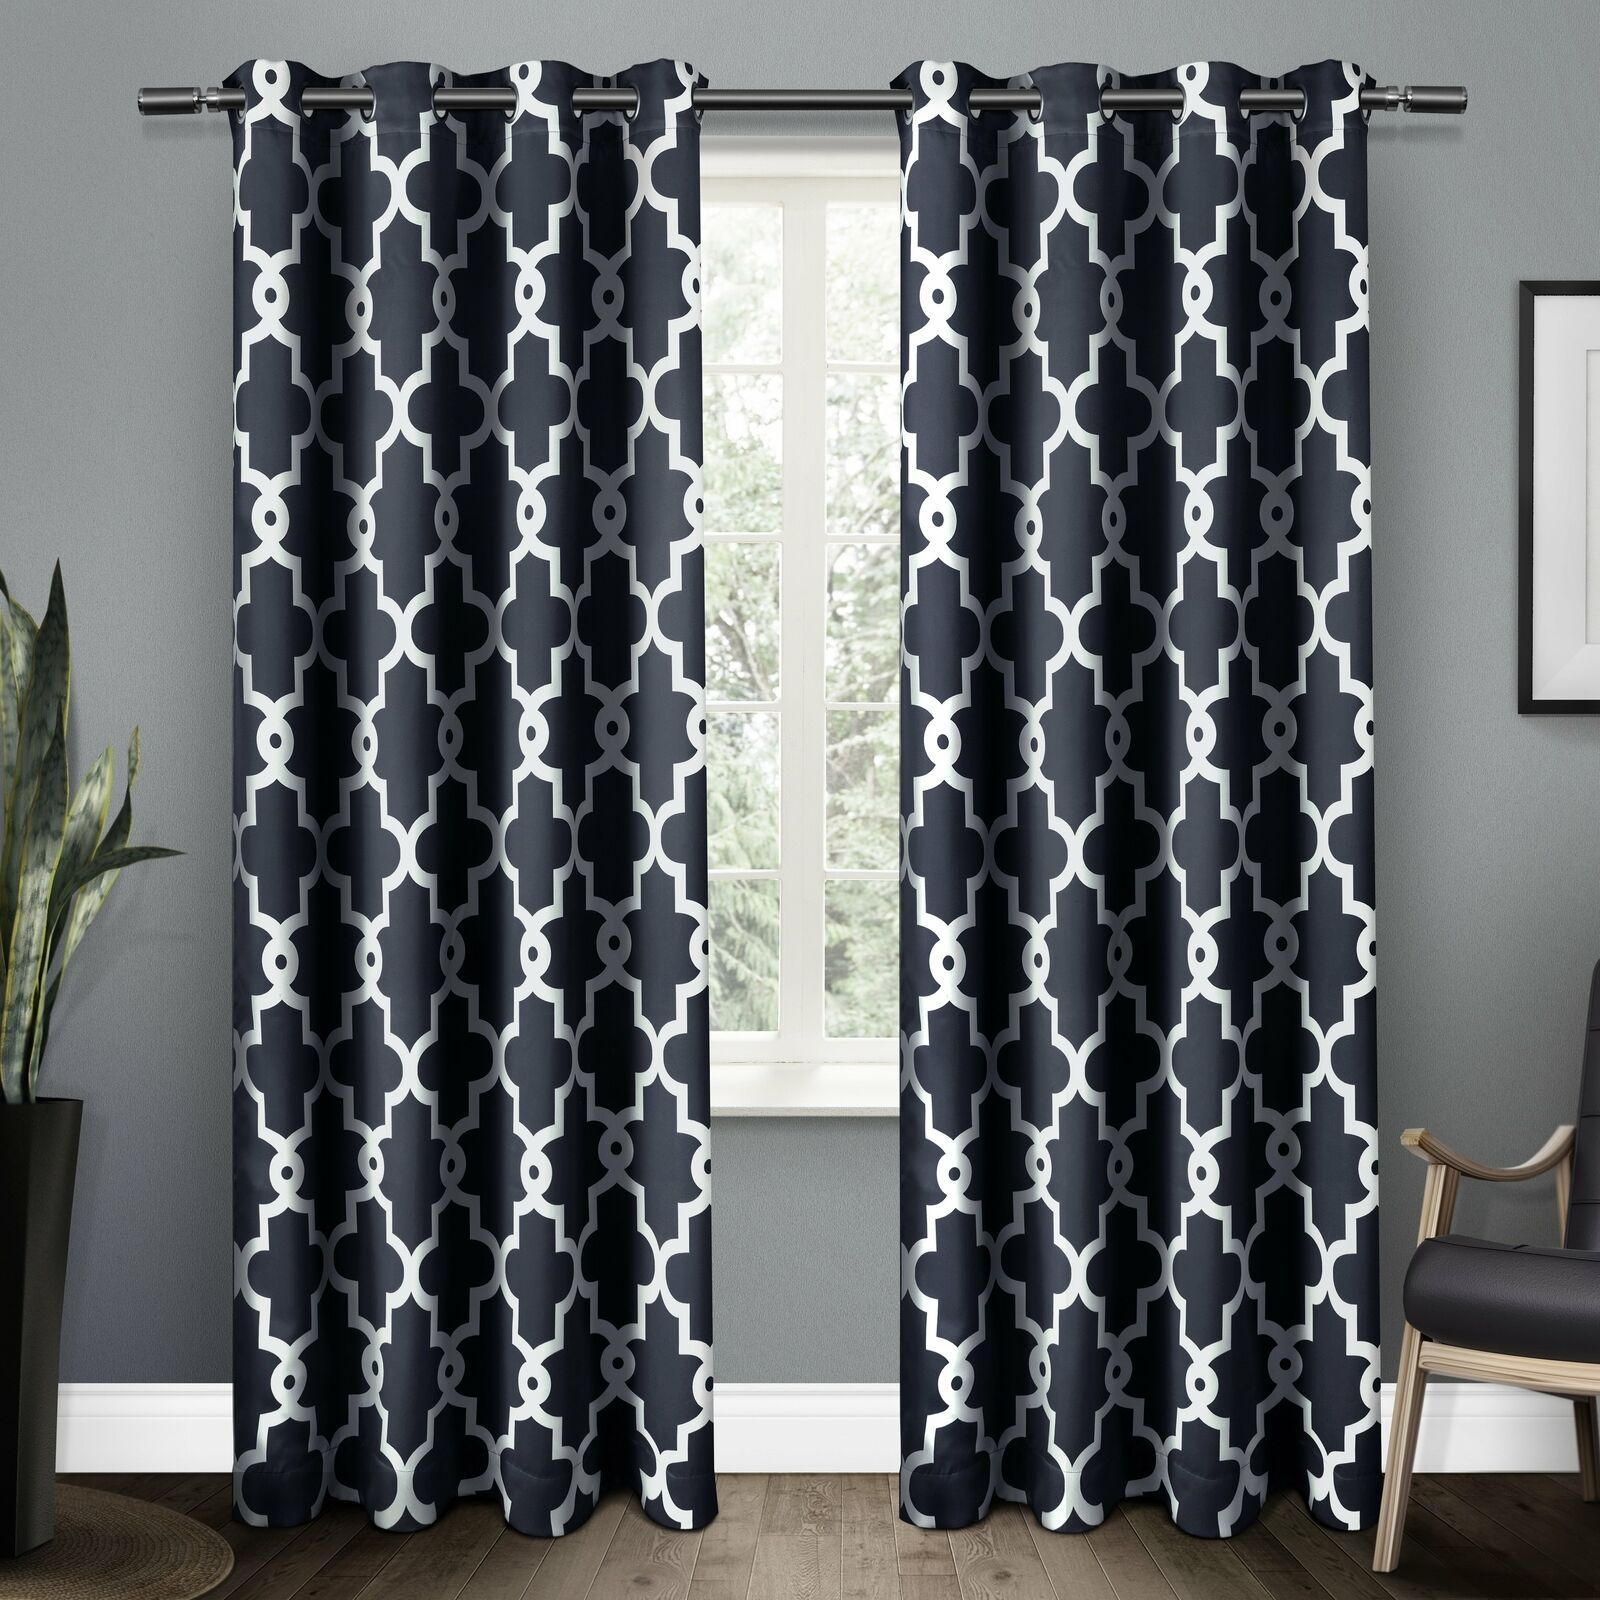 The Curated Nomad Duane Blackout Curtain Panel Pair Throughout The Curated Nomad Duane Jacquard Grommet Top Curtain Panel Pairs (View 10 of 30)